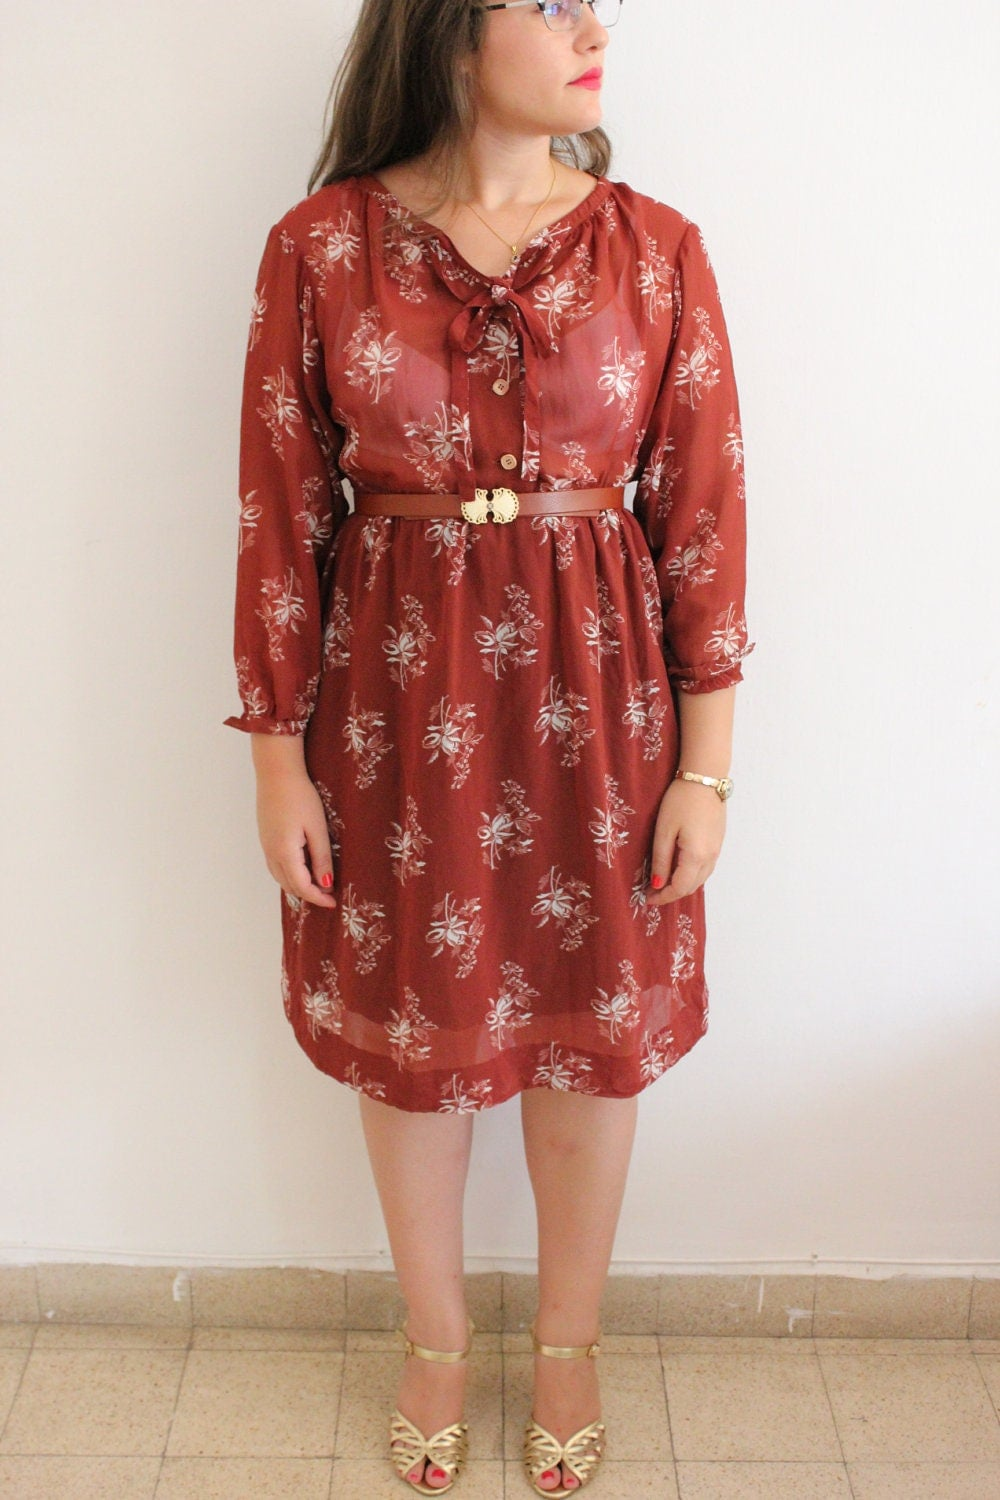 Vintage 70s Floral Brown Secretary Dress With Ascot Tie - SALE - ClementinesBoutique